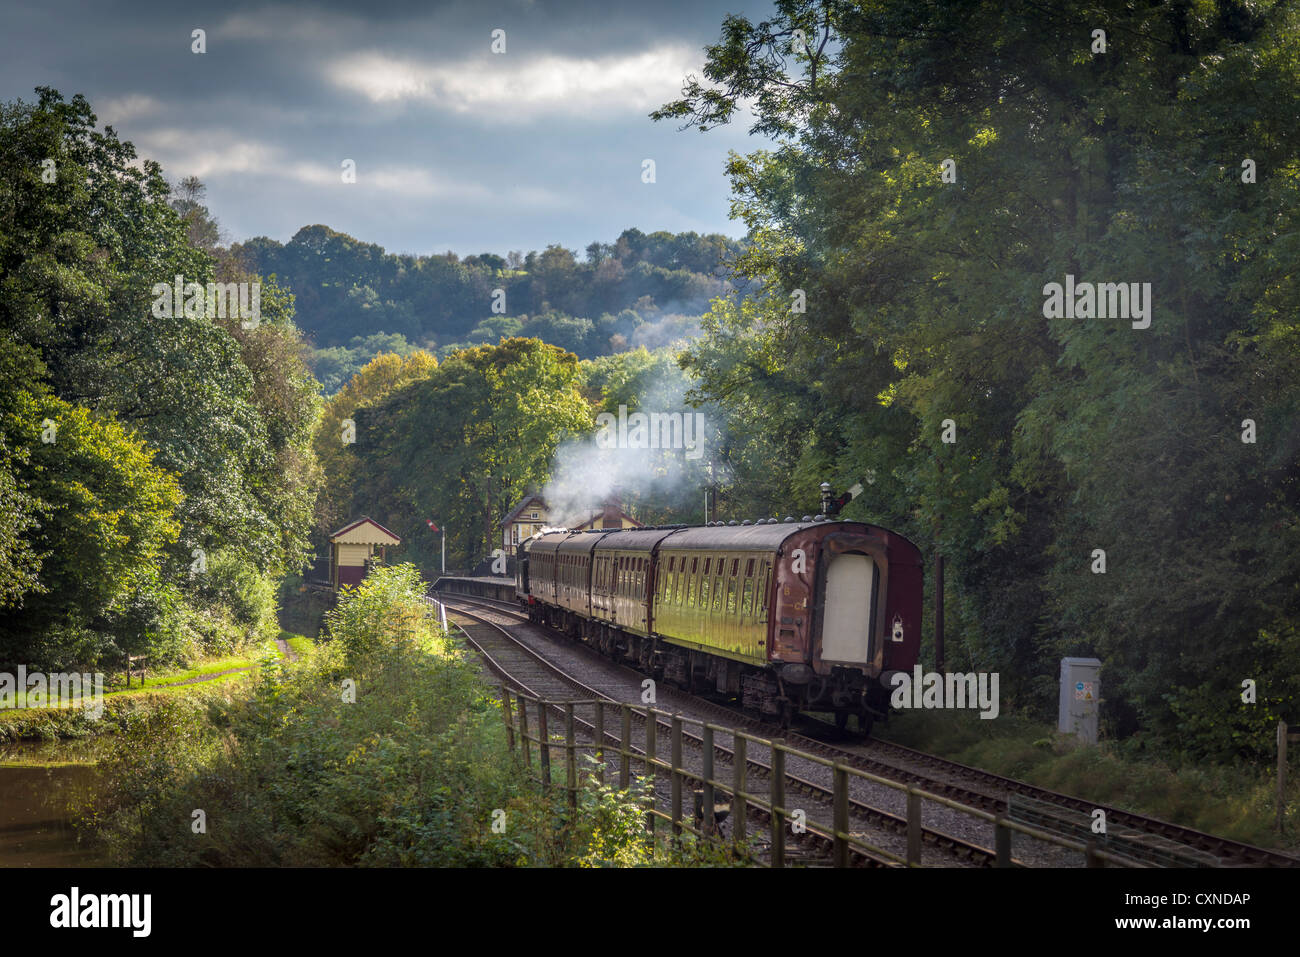 Consall station on the Churnet Valley Railway with a steam train passing by the Caldon canal in Staffordshire. - Stock Image